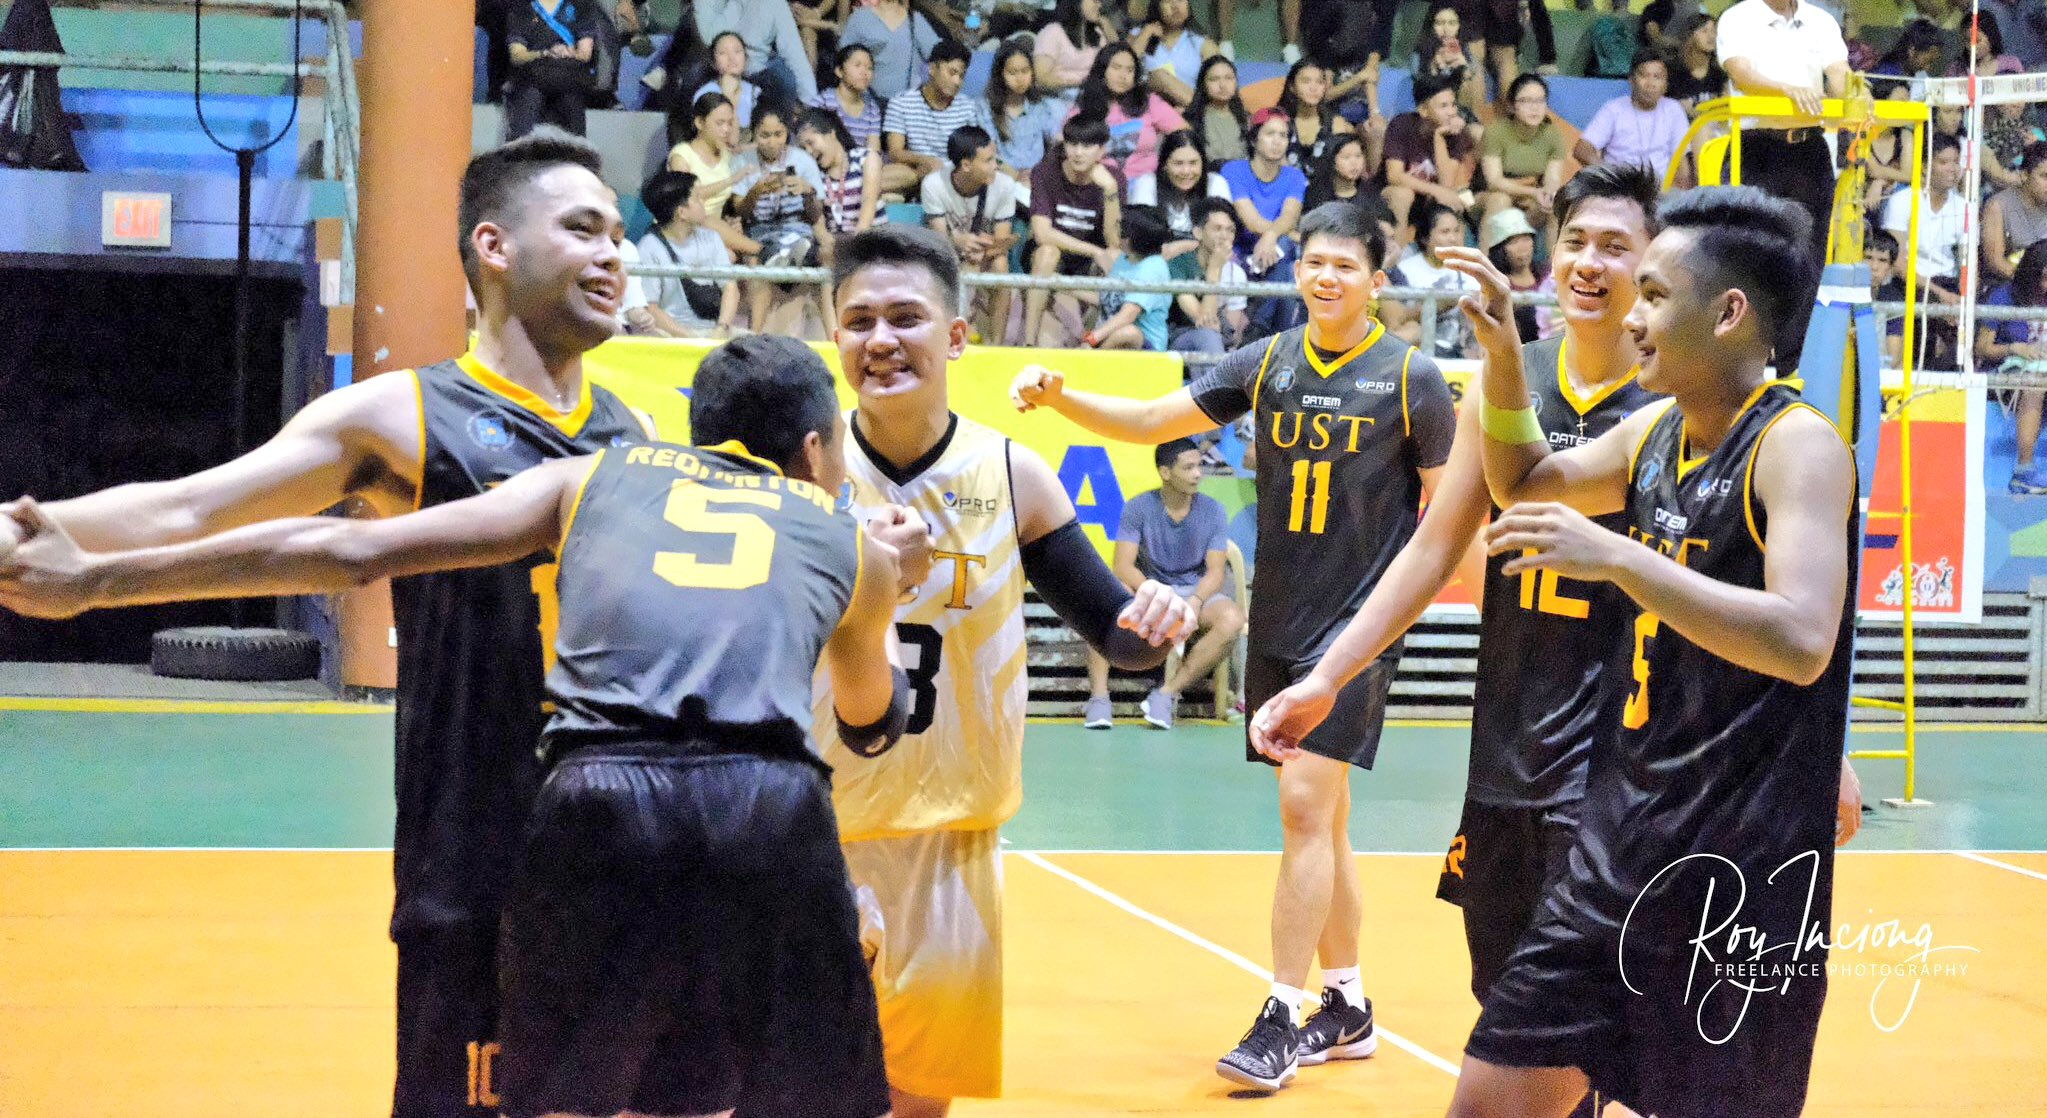 Ust Men S Volleyball On Twitter 2018unigames Icymi The Ust Tiger Spikers Asserted Their Dominance Over The Pup Men S Volleyball Team Sweeping In 3 Straight Sets 25 15 25 18 25 18 Watch The Replay